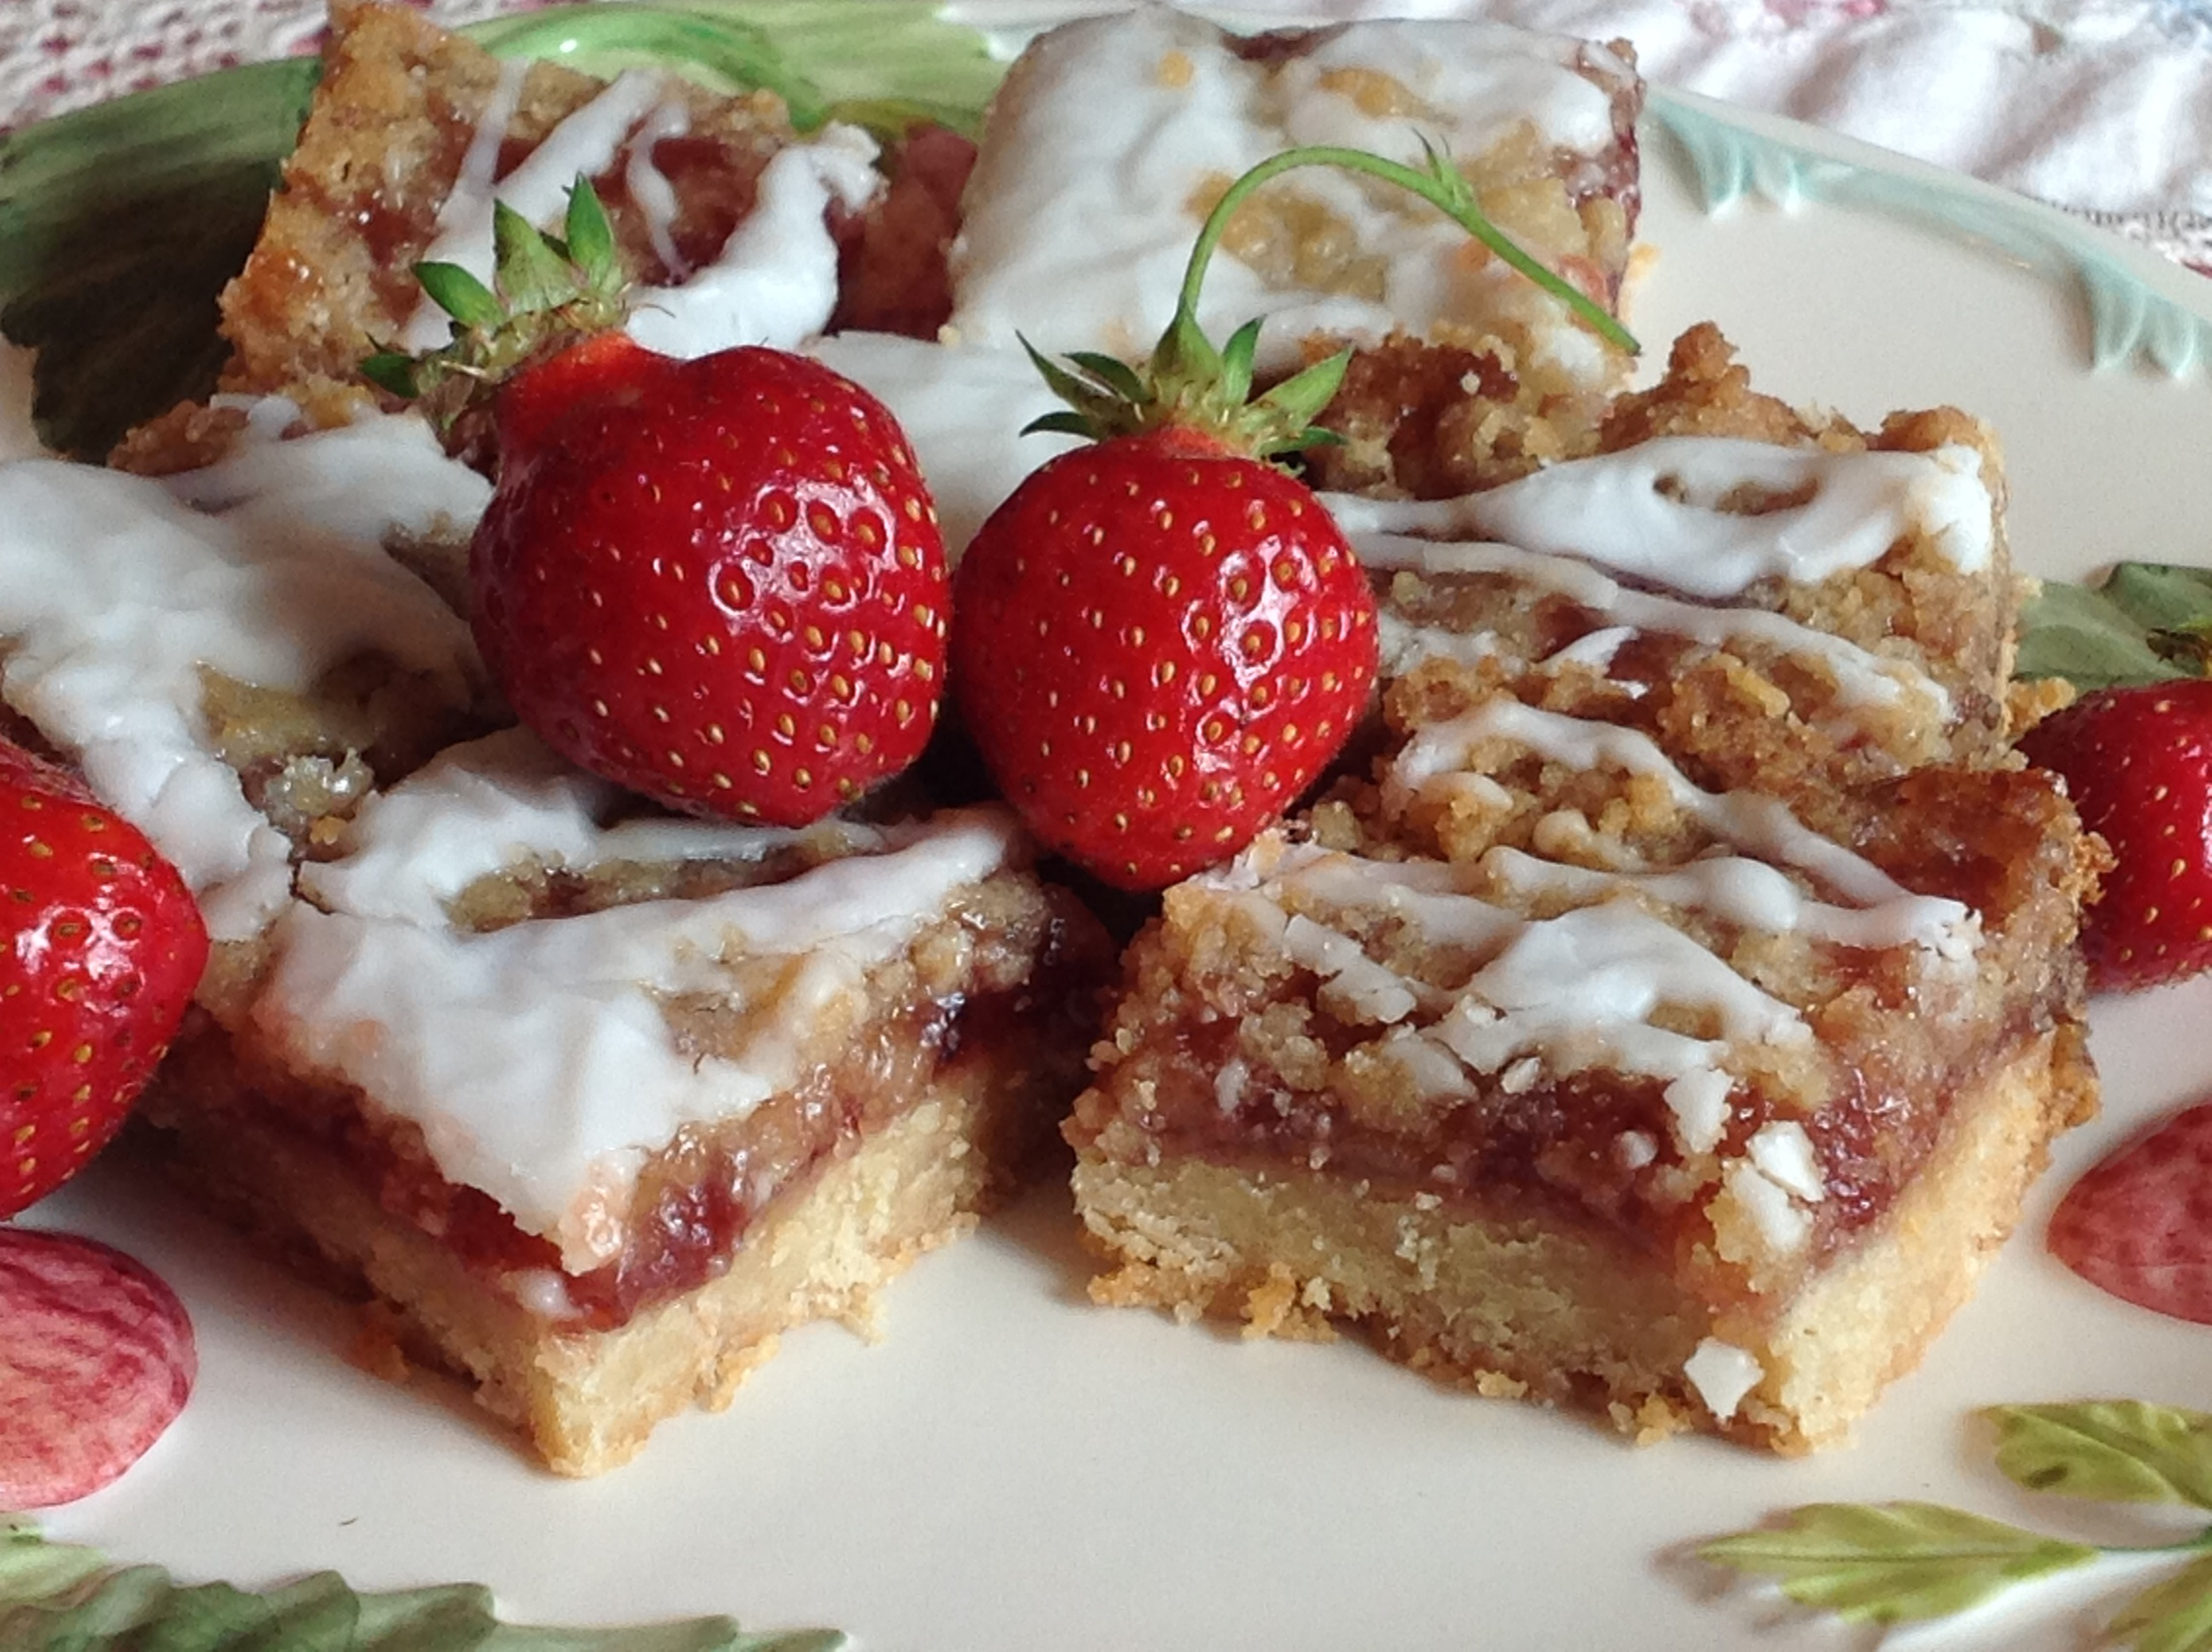 Strawberry Marzipan Bars